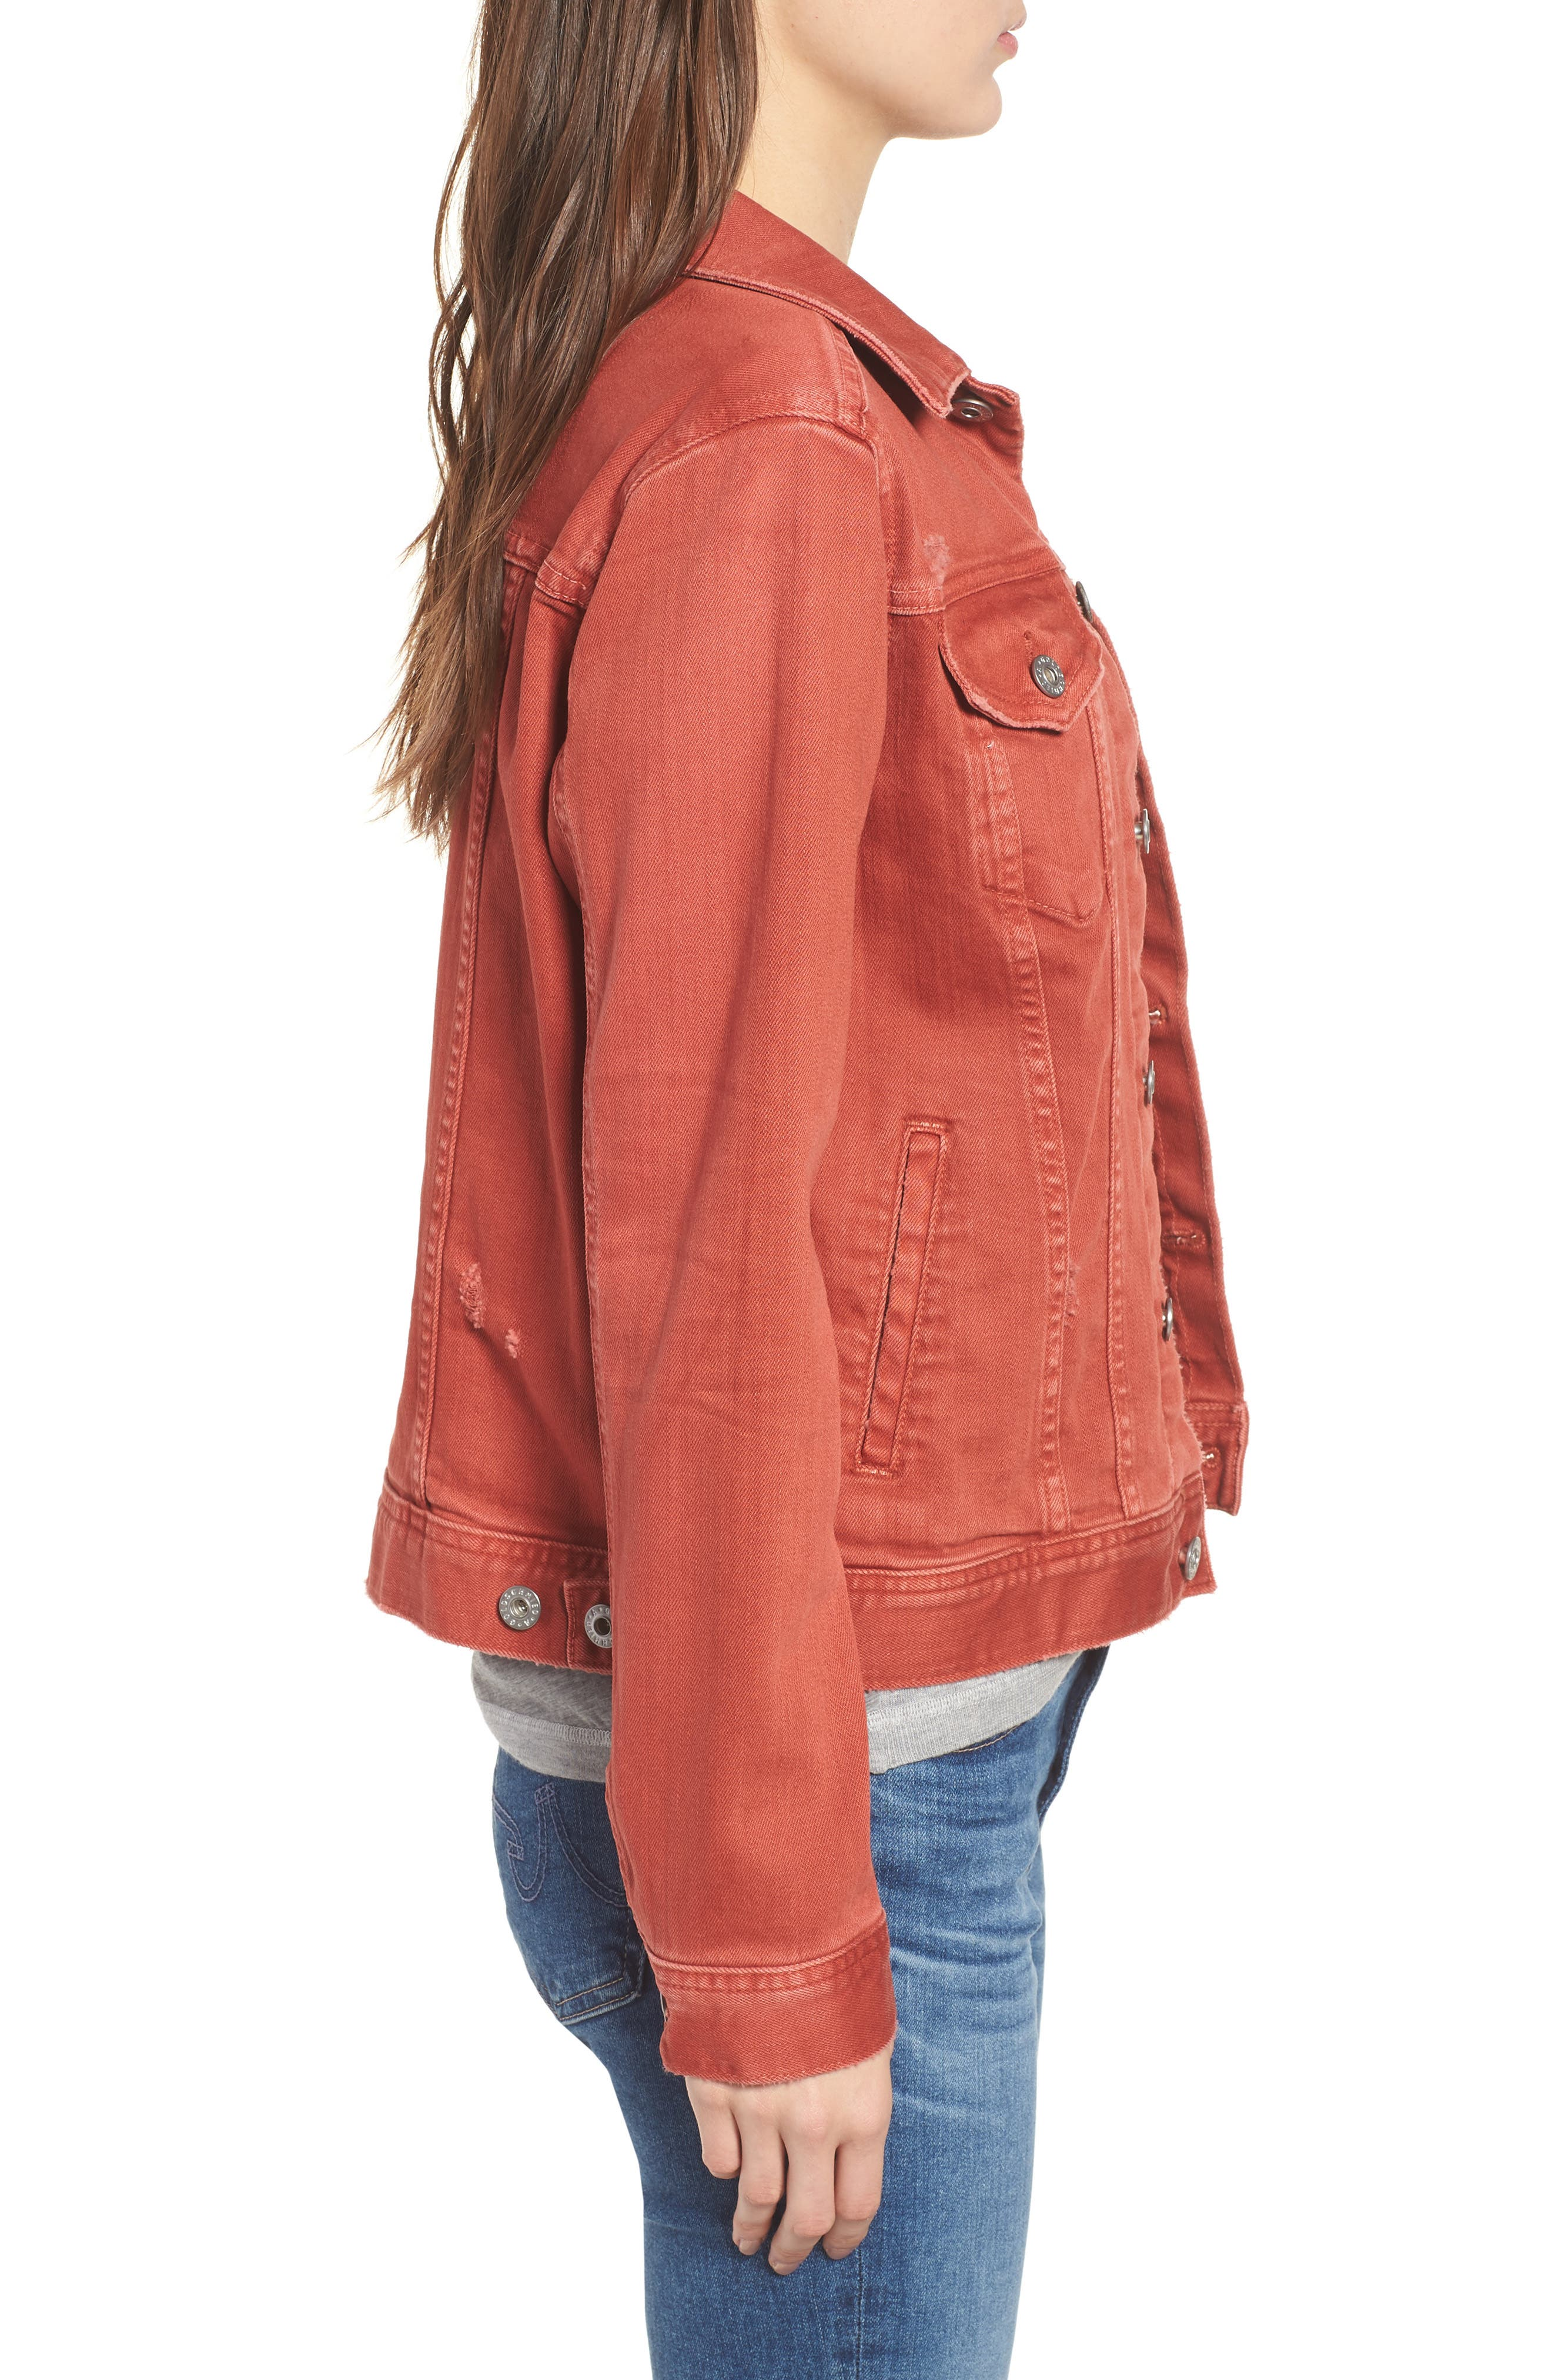 Mya Denim Jacket,                             Alternate thumbnail 3, color,                             10 YEARS REMEDY FIREBRICK